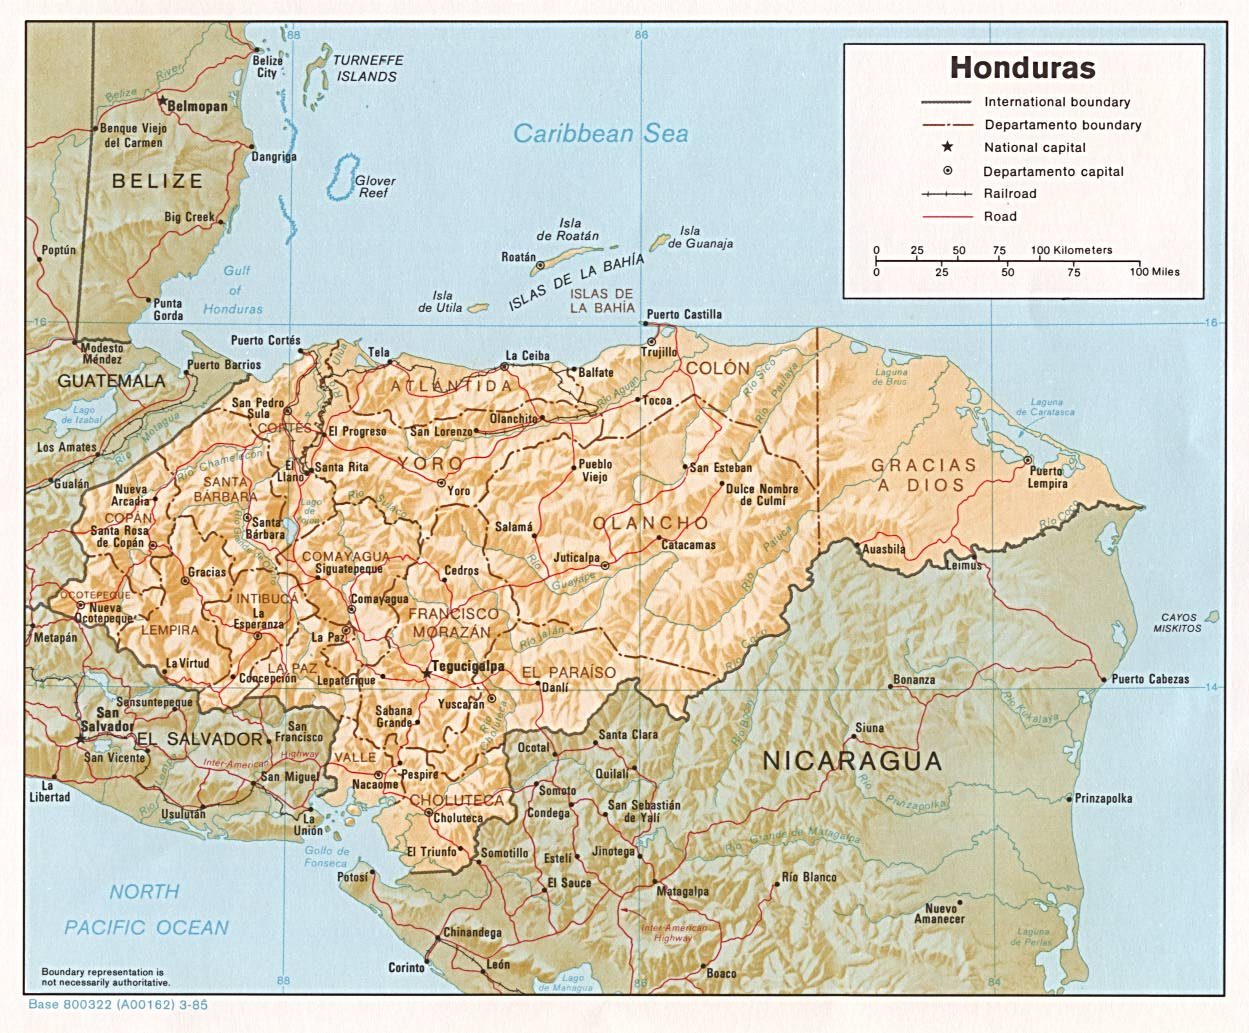 Honduras Maps PerryCastañeda Map Collection UT Library Online - Hondurus map